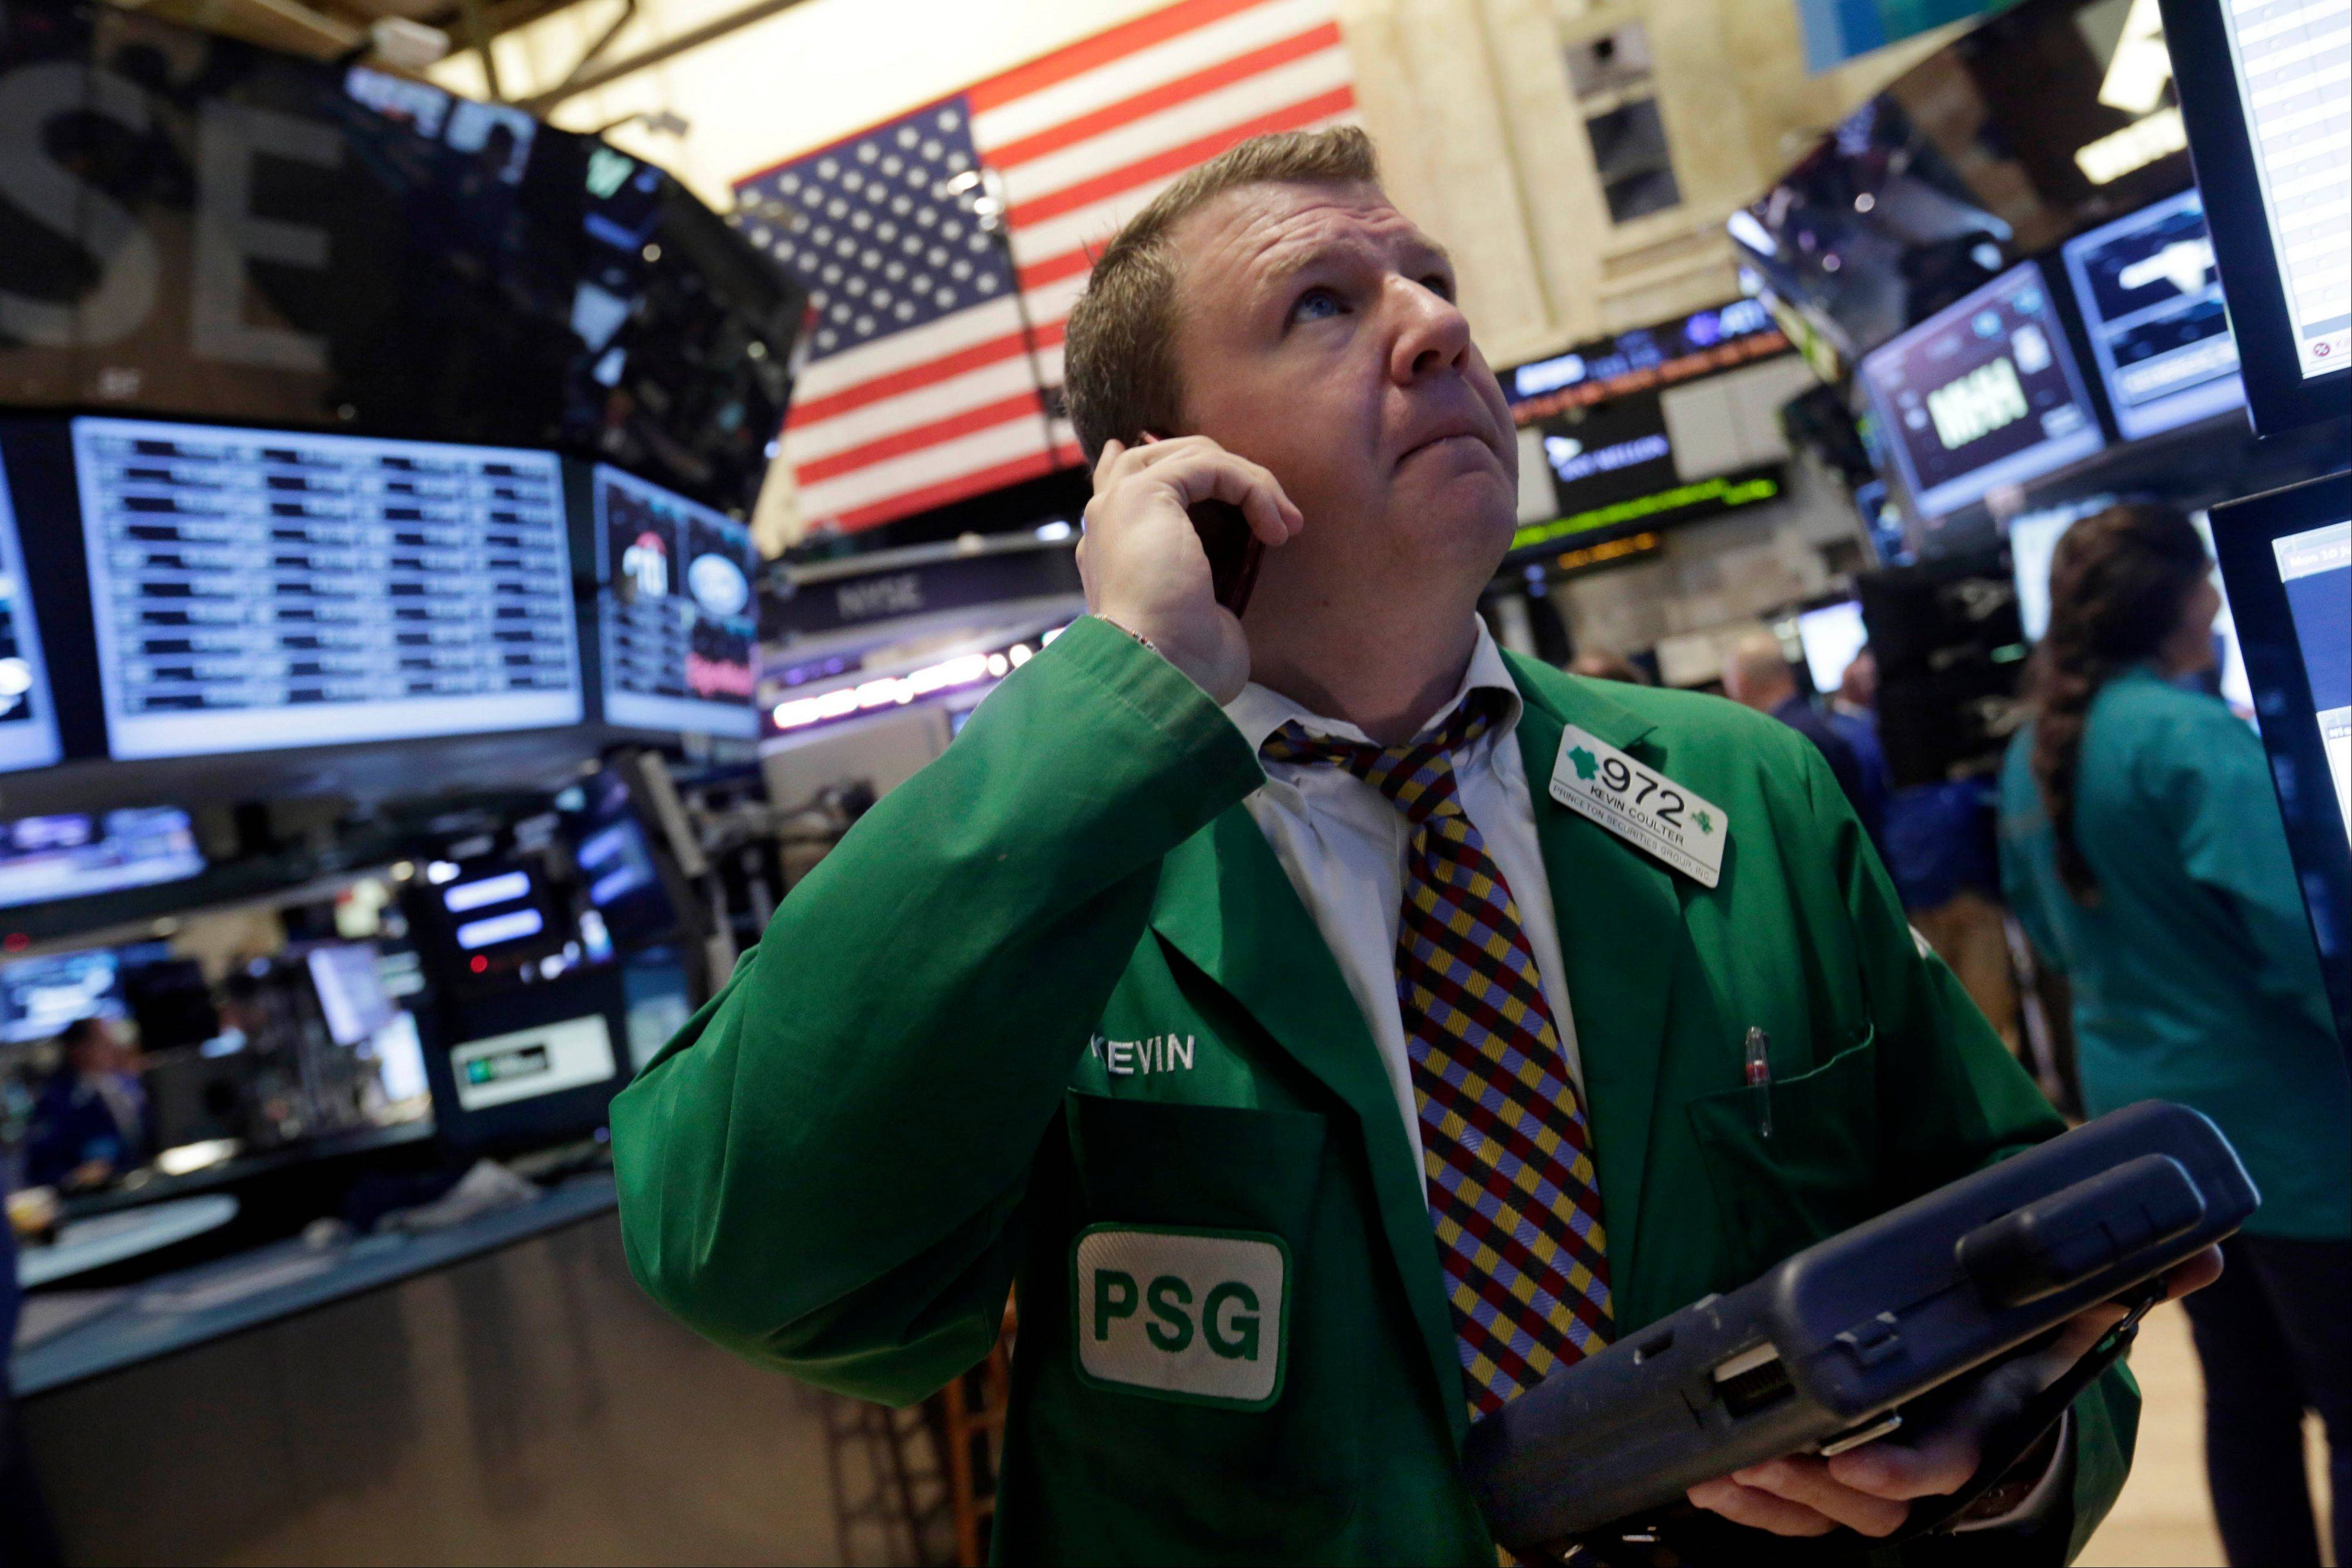 U.S. stocks declined, following the biggest two-day gain for the Standard & Poor's 500 Index since January, as investors weighed S&P's move to boost its outlook for America and Chinese data missed estimates.